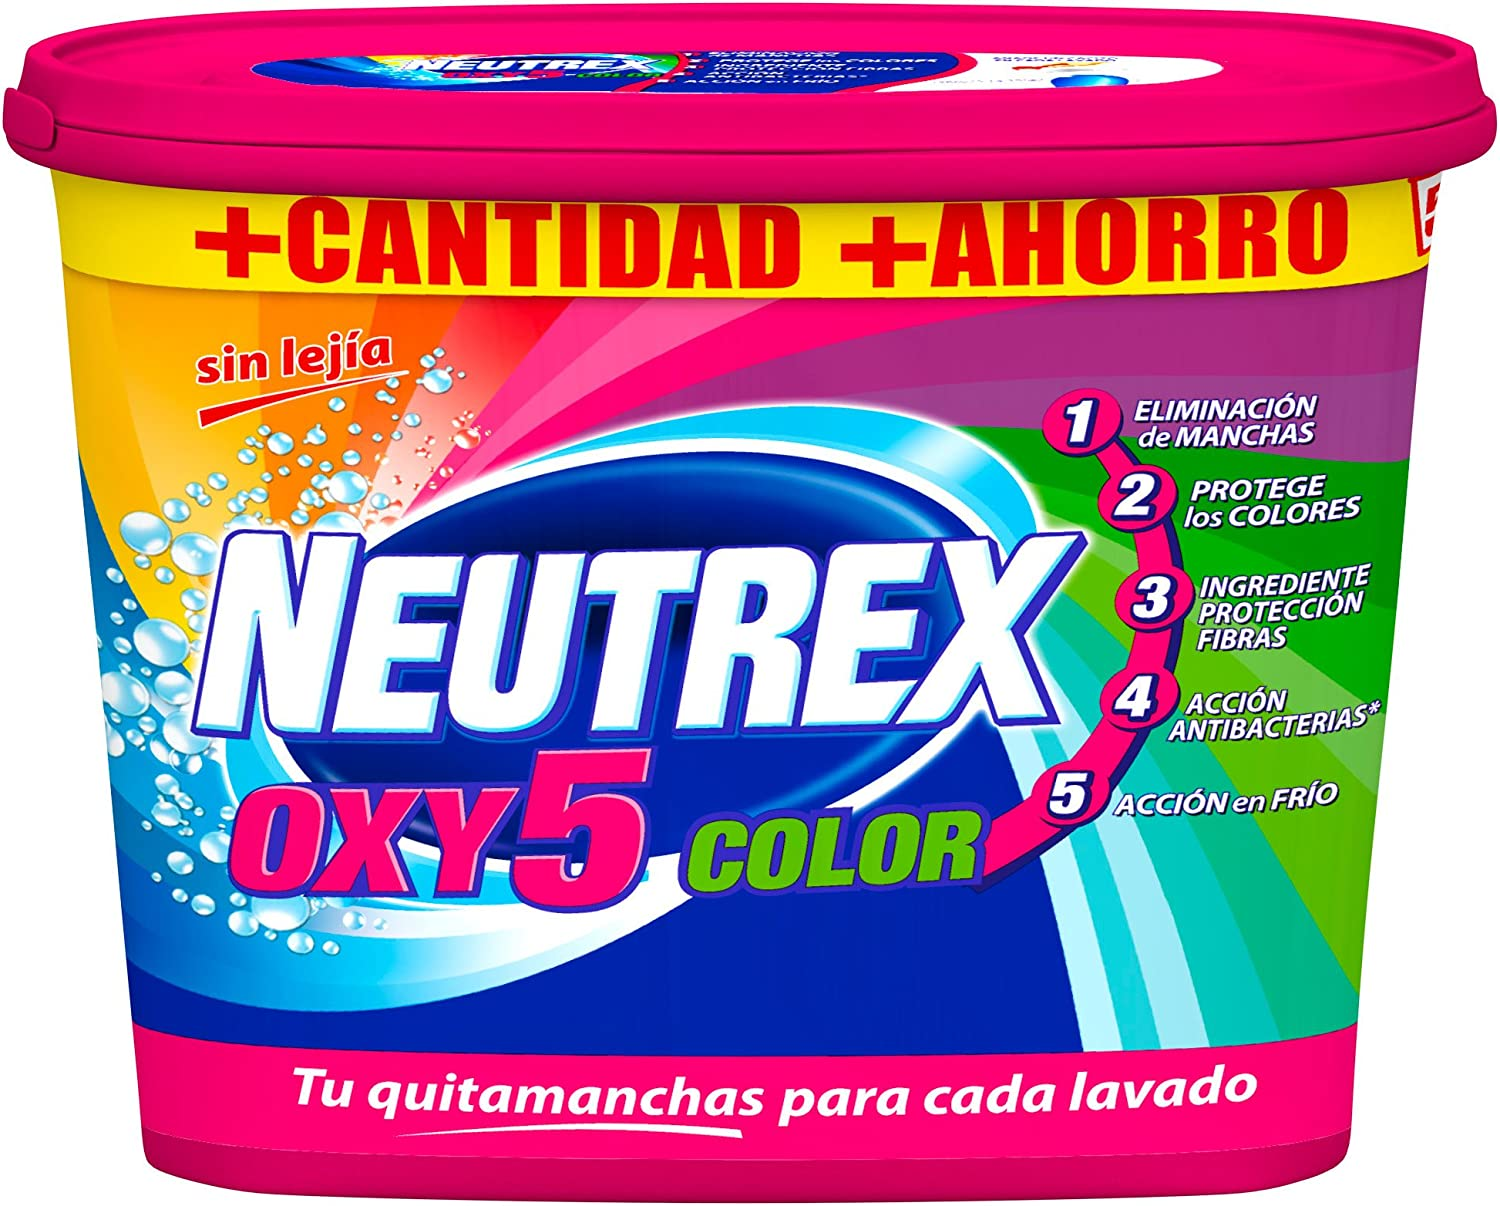 Neutrex Oxy Color Quitamanchas Polvo - 512g: Amazon.es: Amazon Pantry